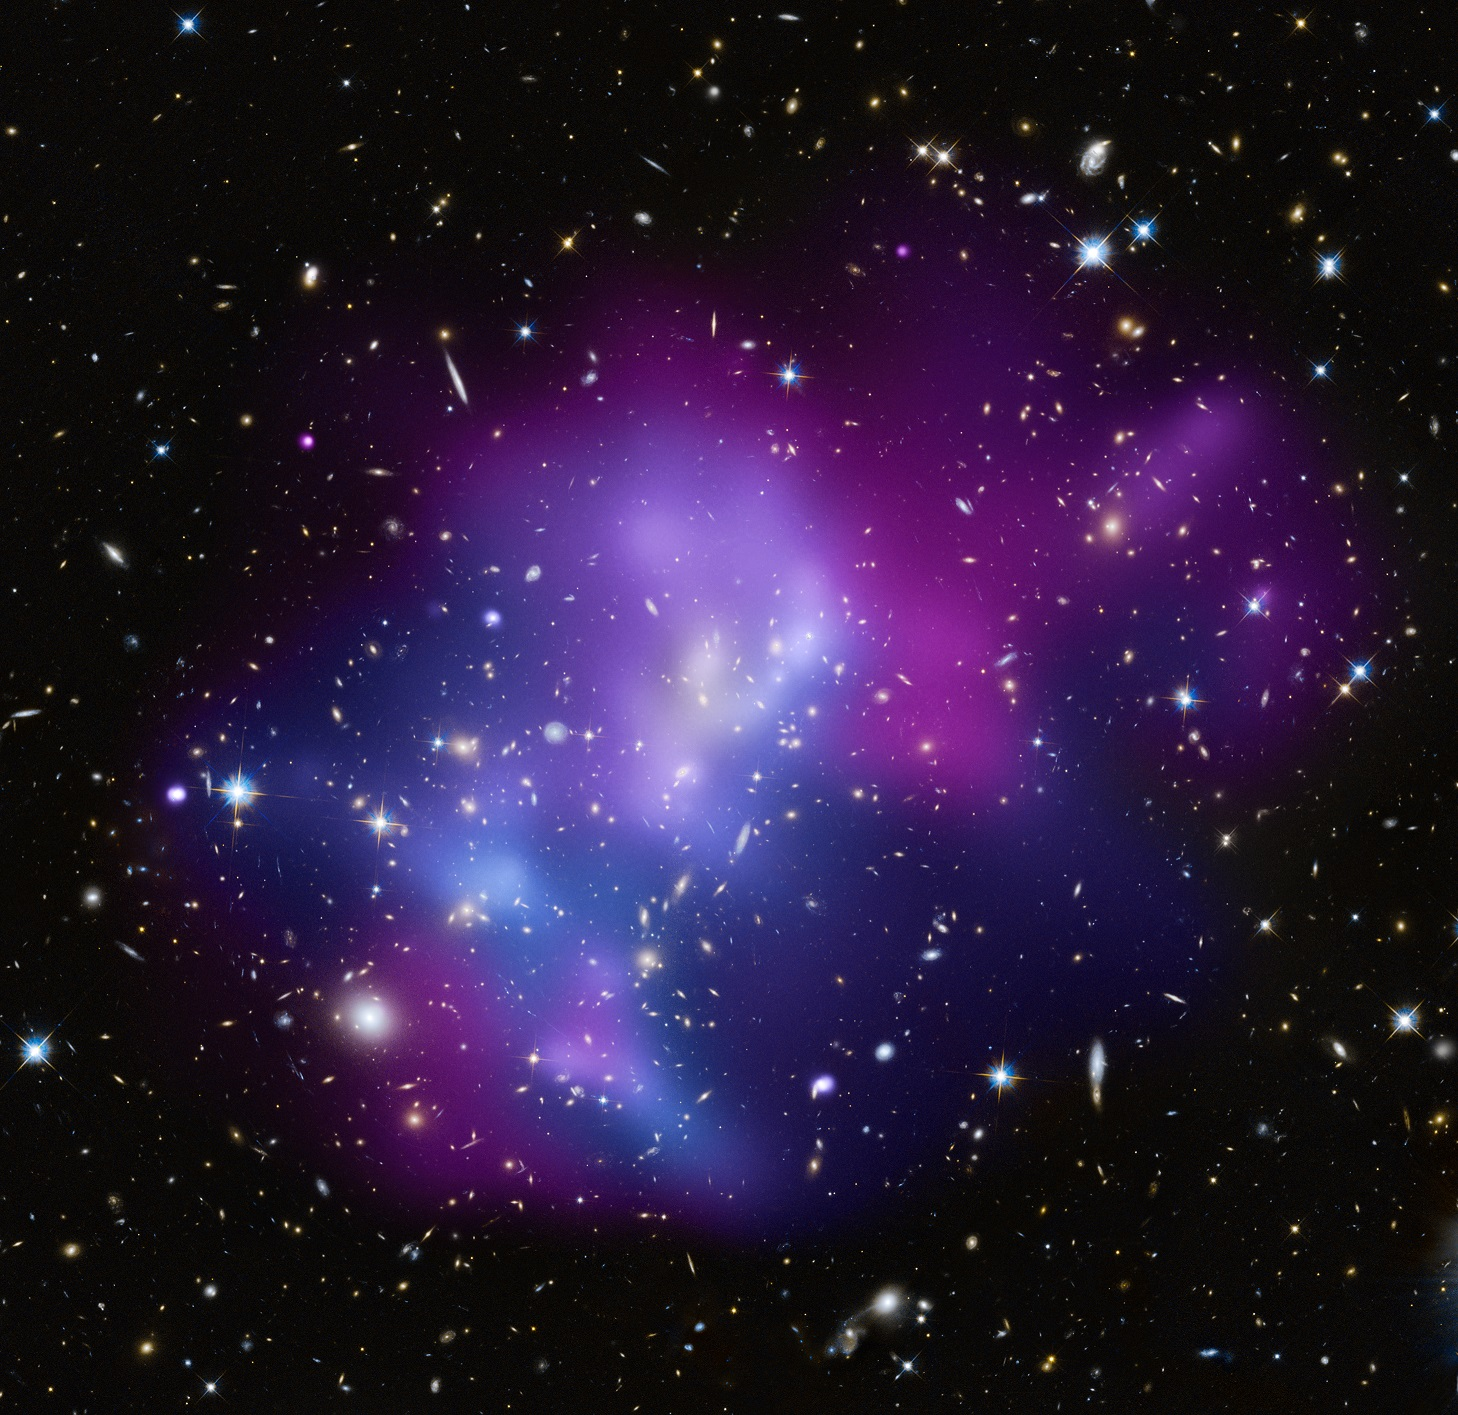 Galaxy Cluster Image